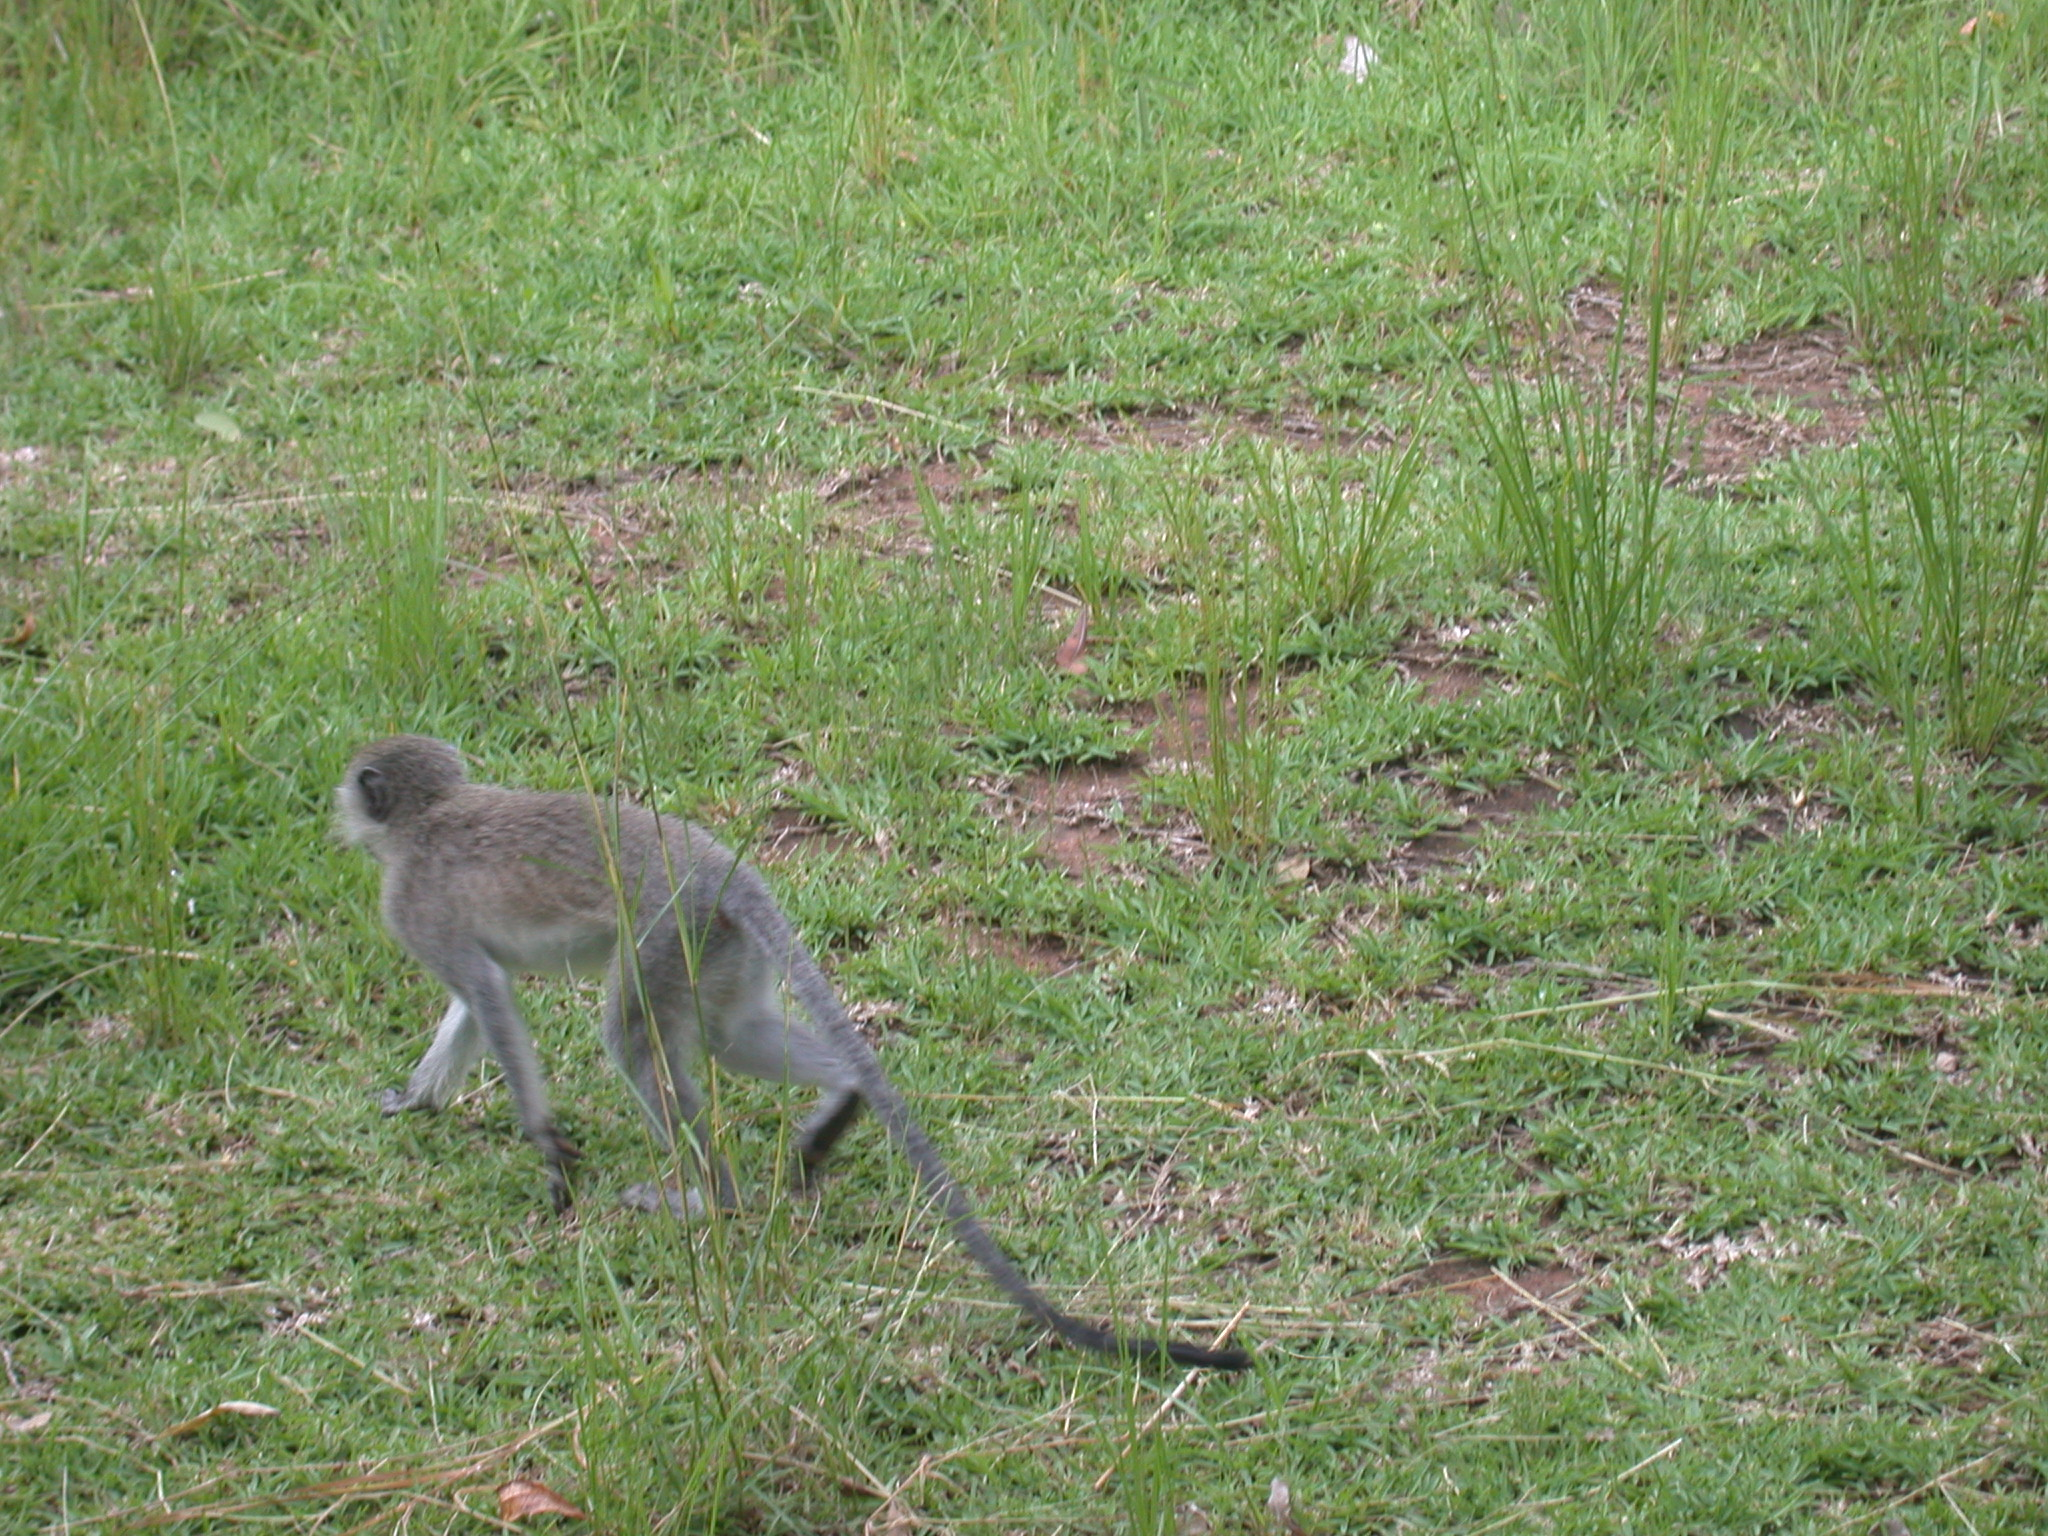 Monkey Crossing Meadow Outside My Suite at the Ancient City Lodge, Great Zimbabwe, Outside Masvingo, Zimbabwe